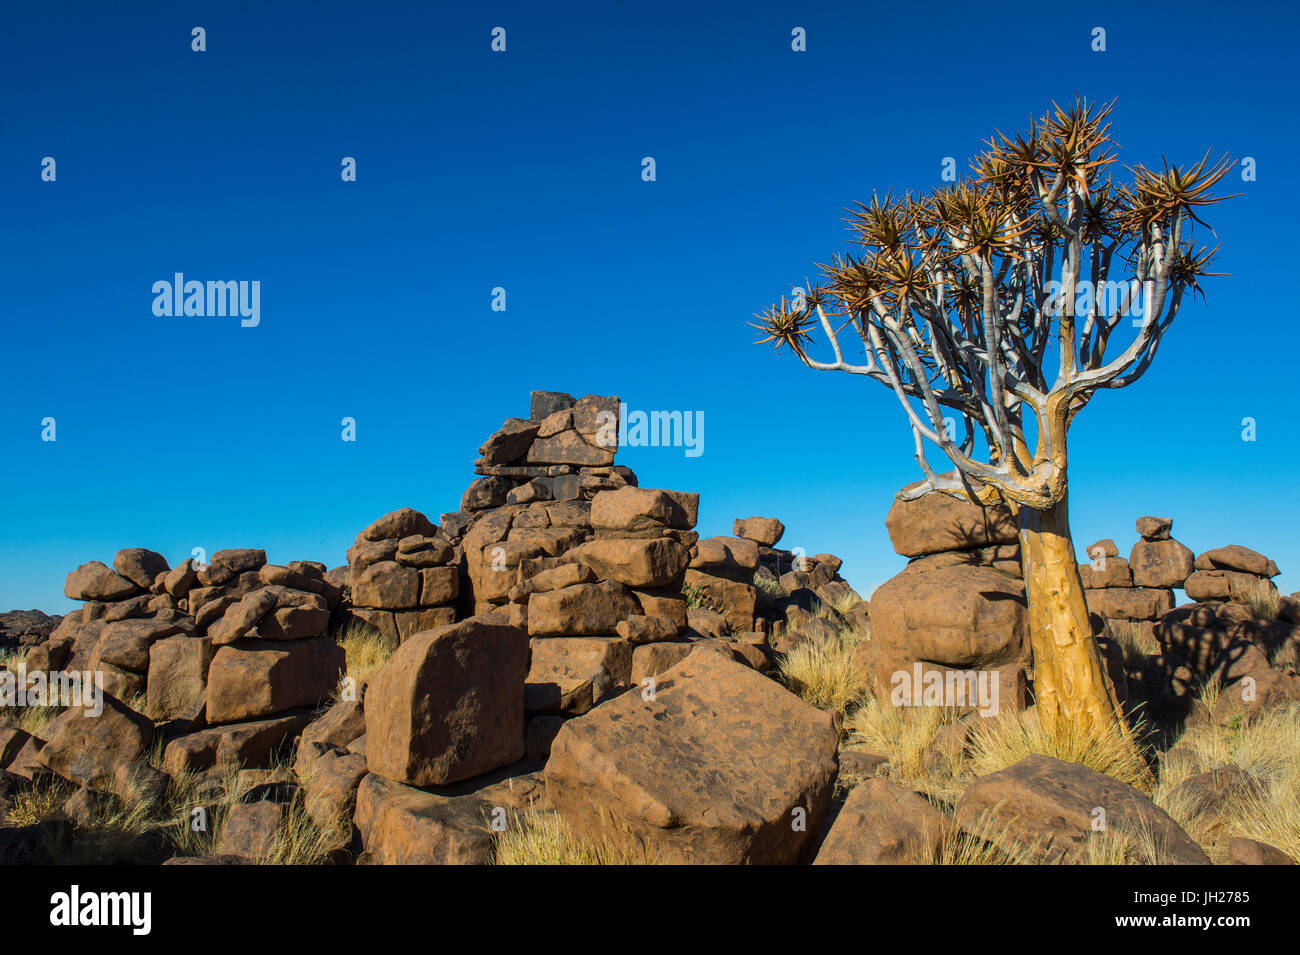 Unusual rock formations, Giant's Playground, Keetmanshoop, Namibia, Africa - Stock Image